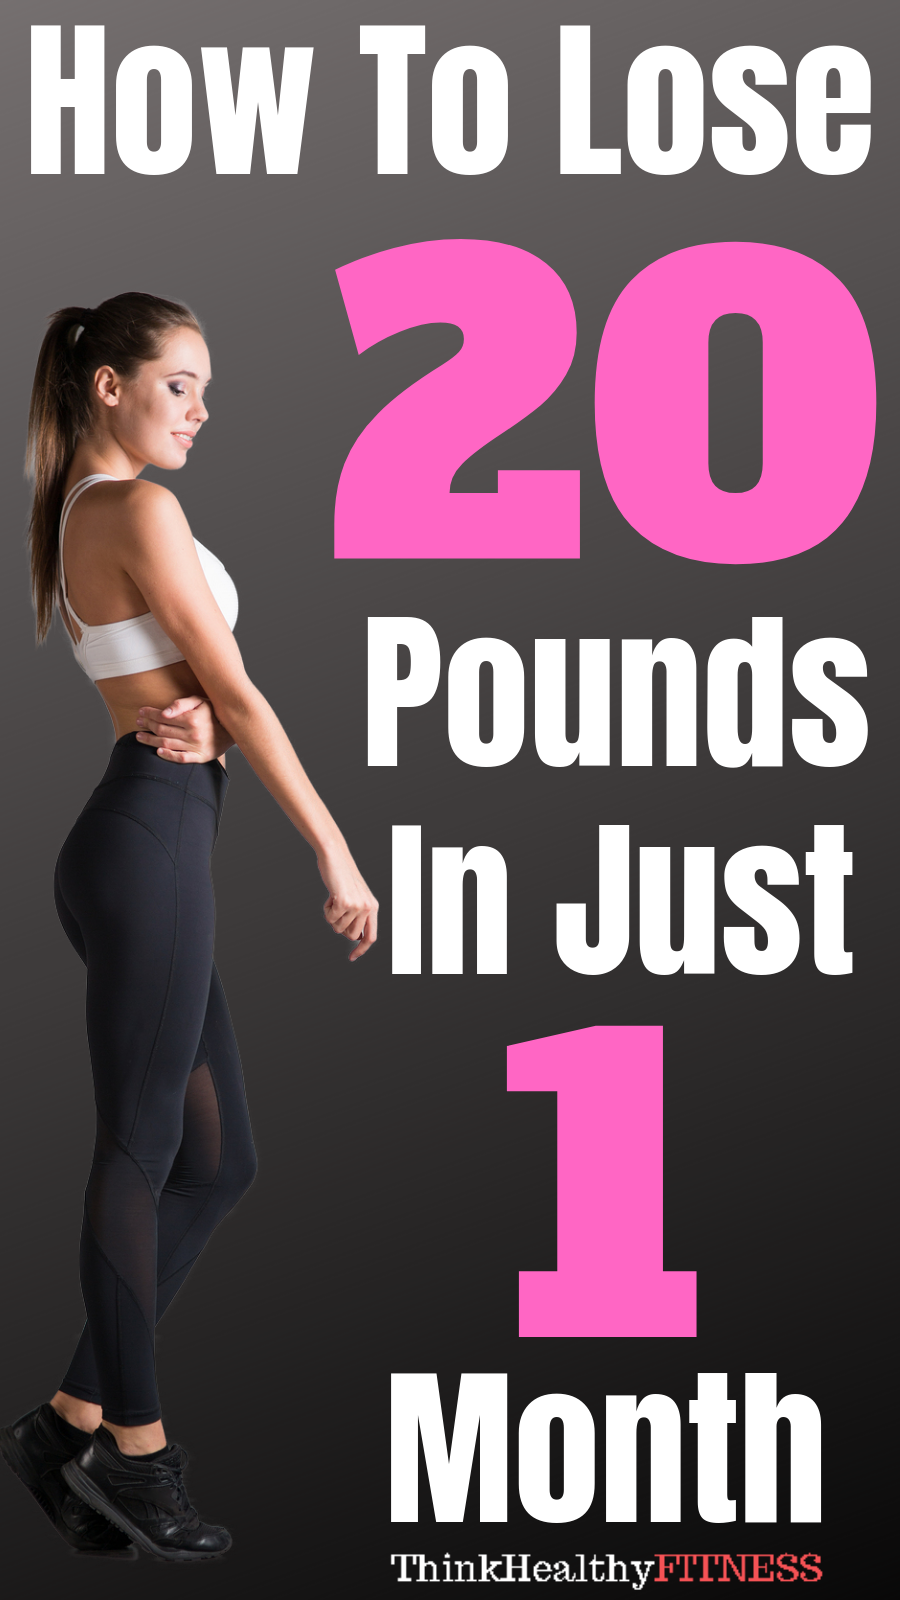 How To Lose 20 Pounds In Just 1 Month